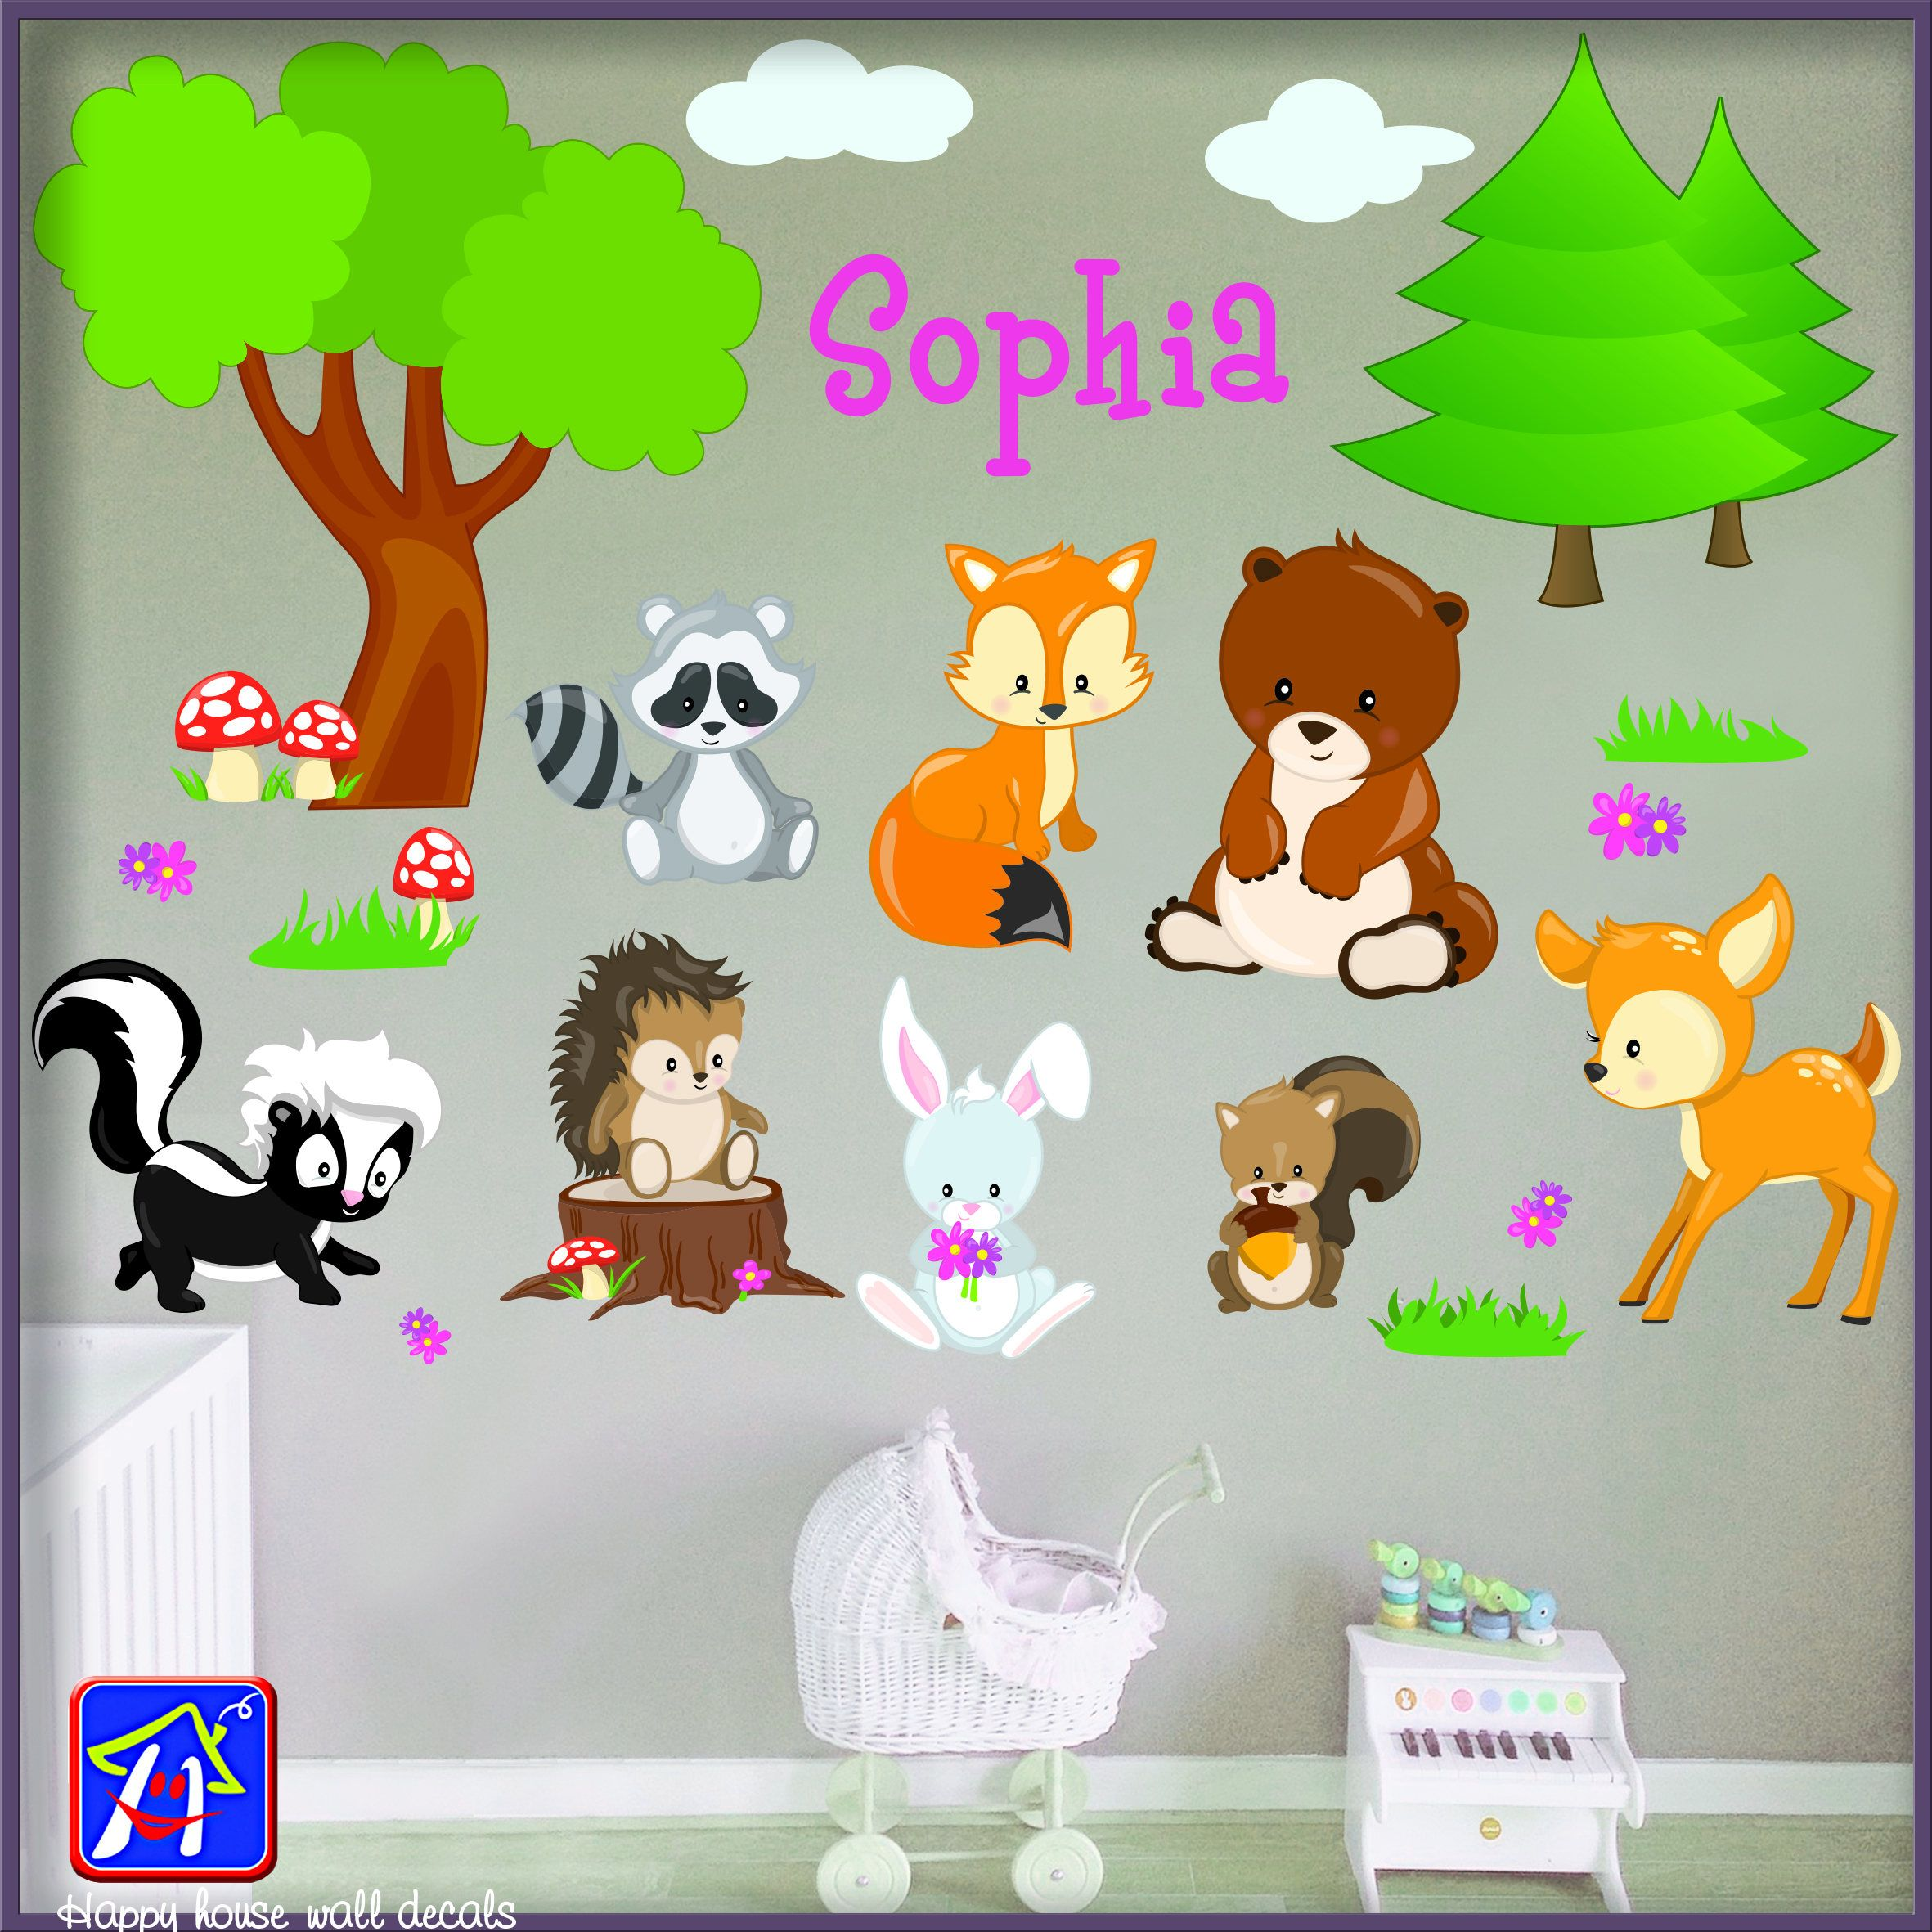 Woodland Animals Decal - Forest Animals Wall Decal - Forest Scene Wall Decals - Forest Animals nursery wall decals - Cute Animals stickers by HappyHouseNo1 ...  sc 1 st  Pinterest : forest animals nursery wall decals - www.pureclipart.com